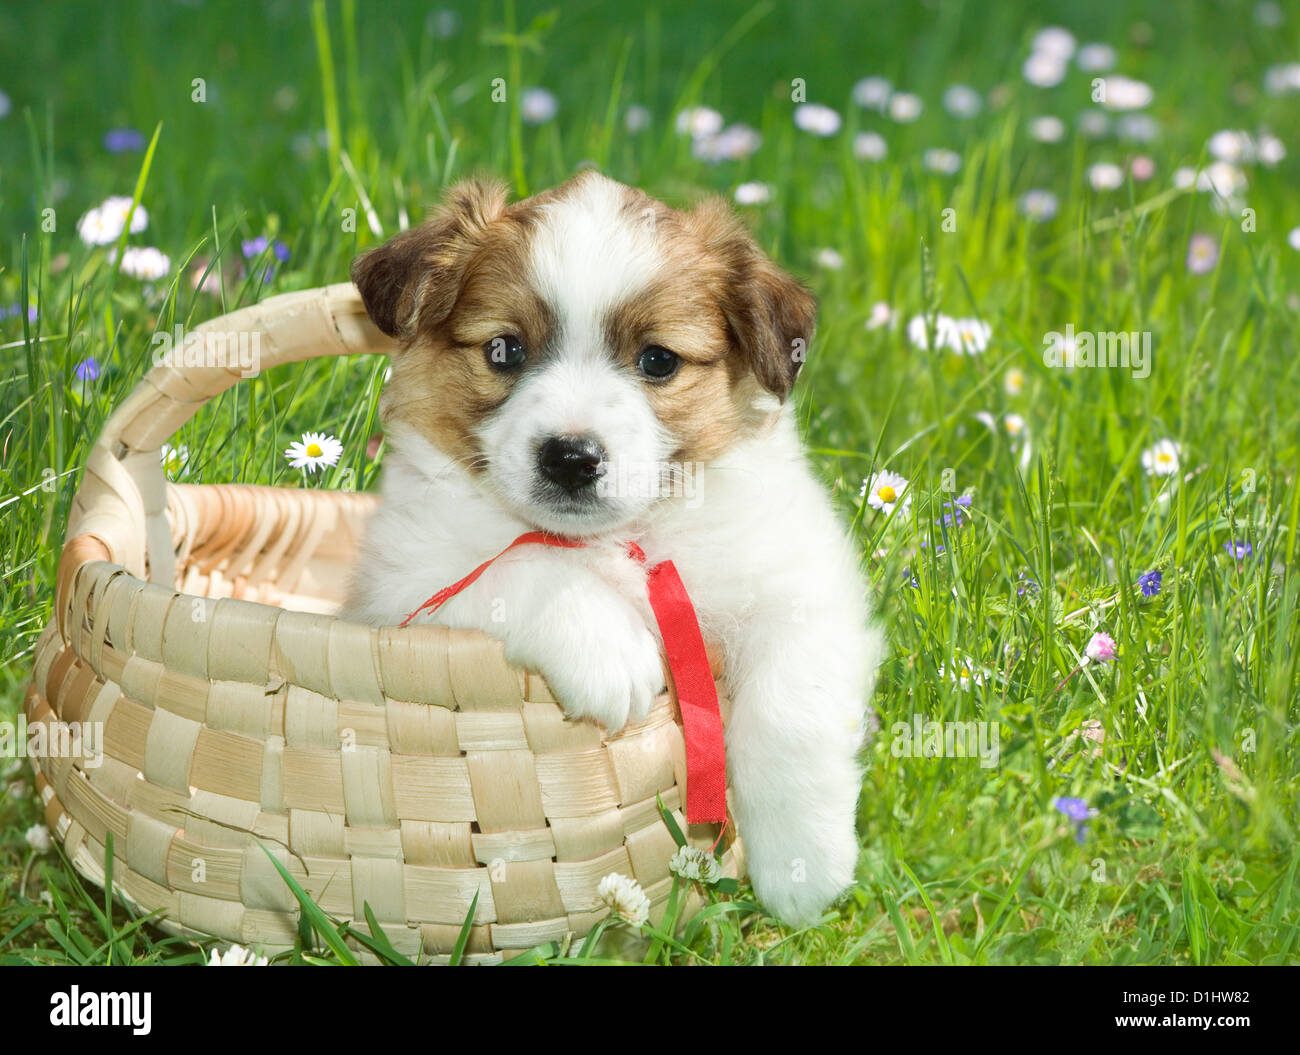 Outdoor portrait of cute young puppy in the basket - Stock Image